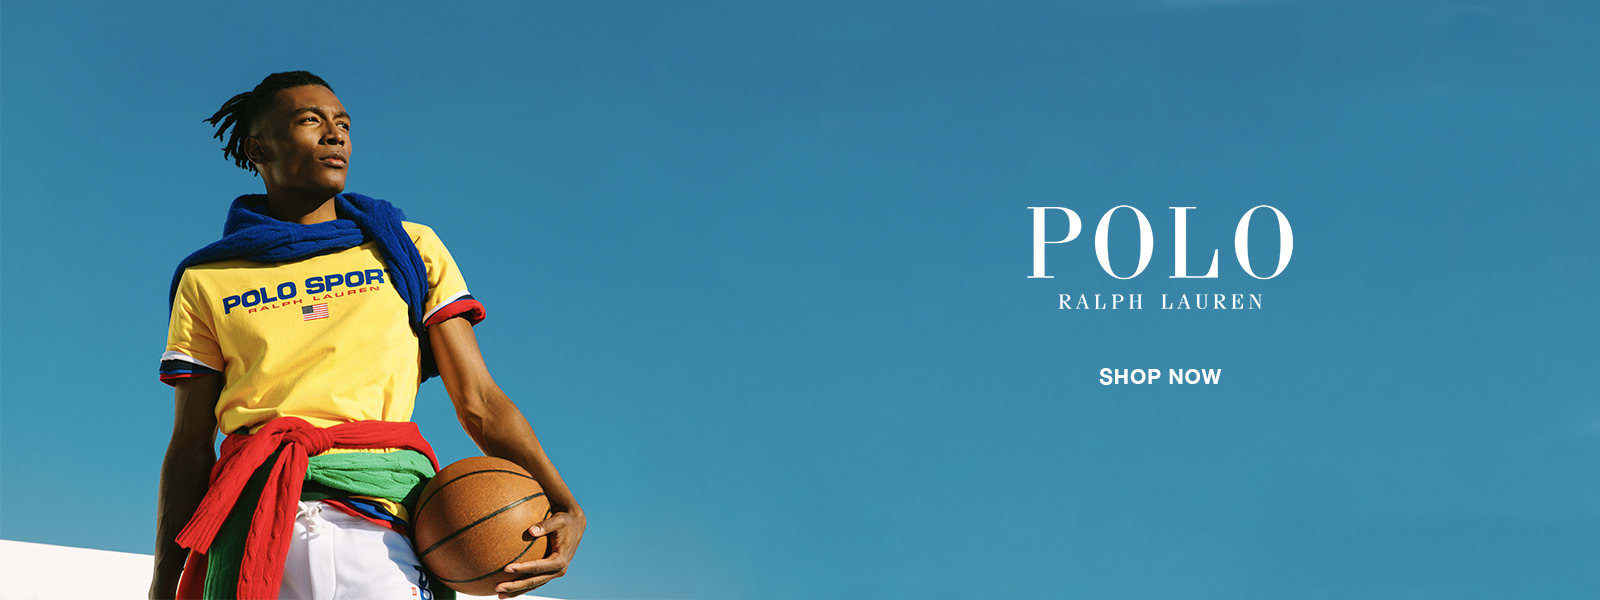 POLO - Ralph Lauren - Shop Now